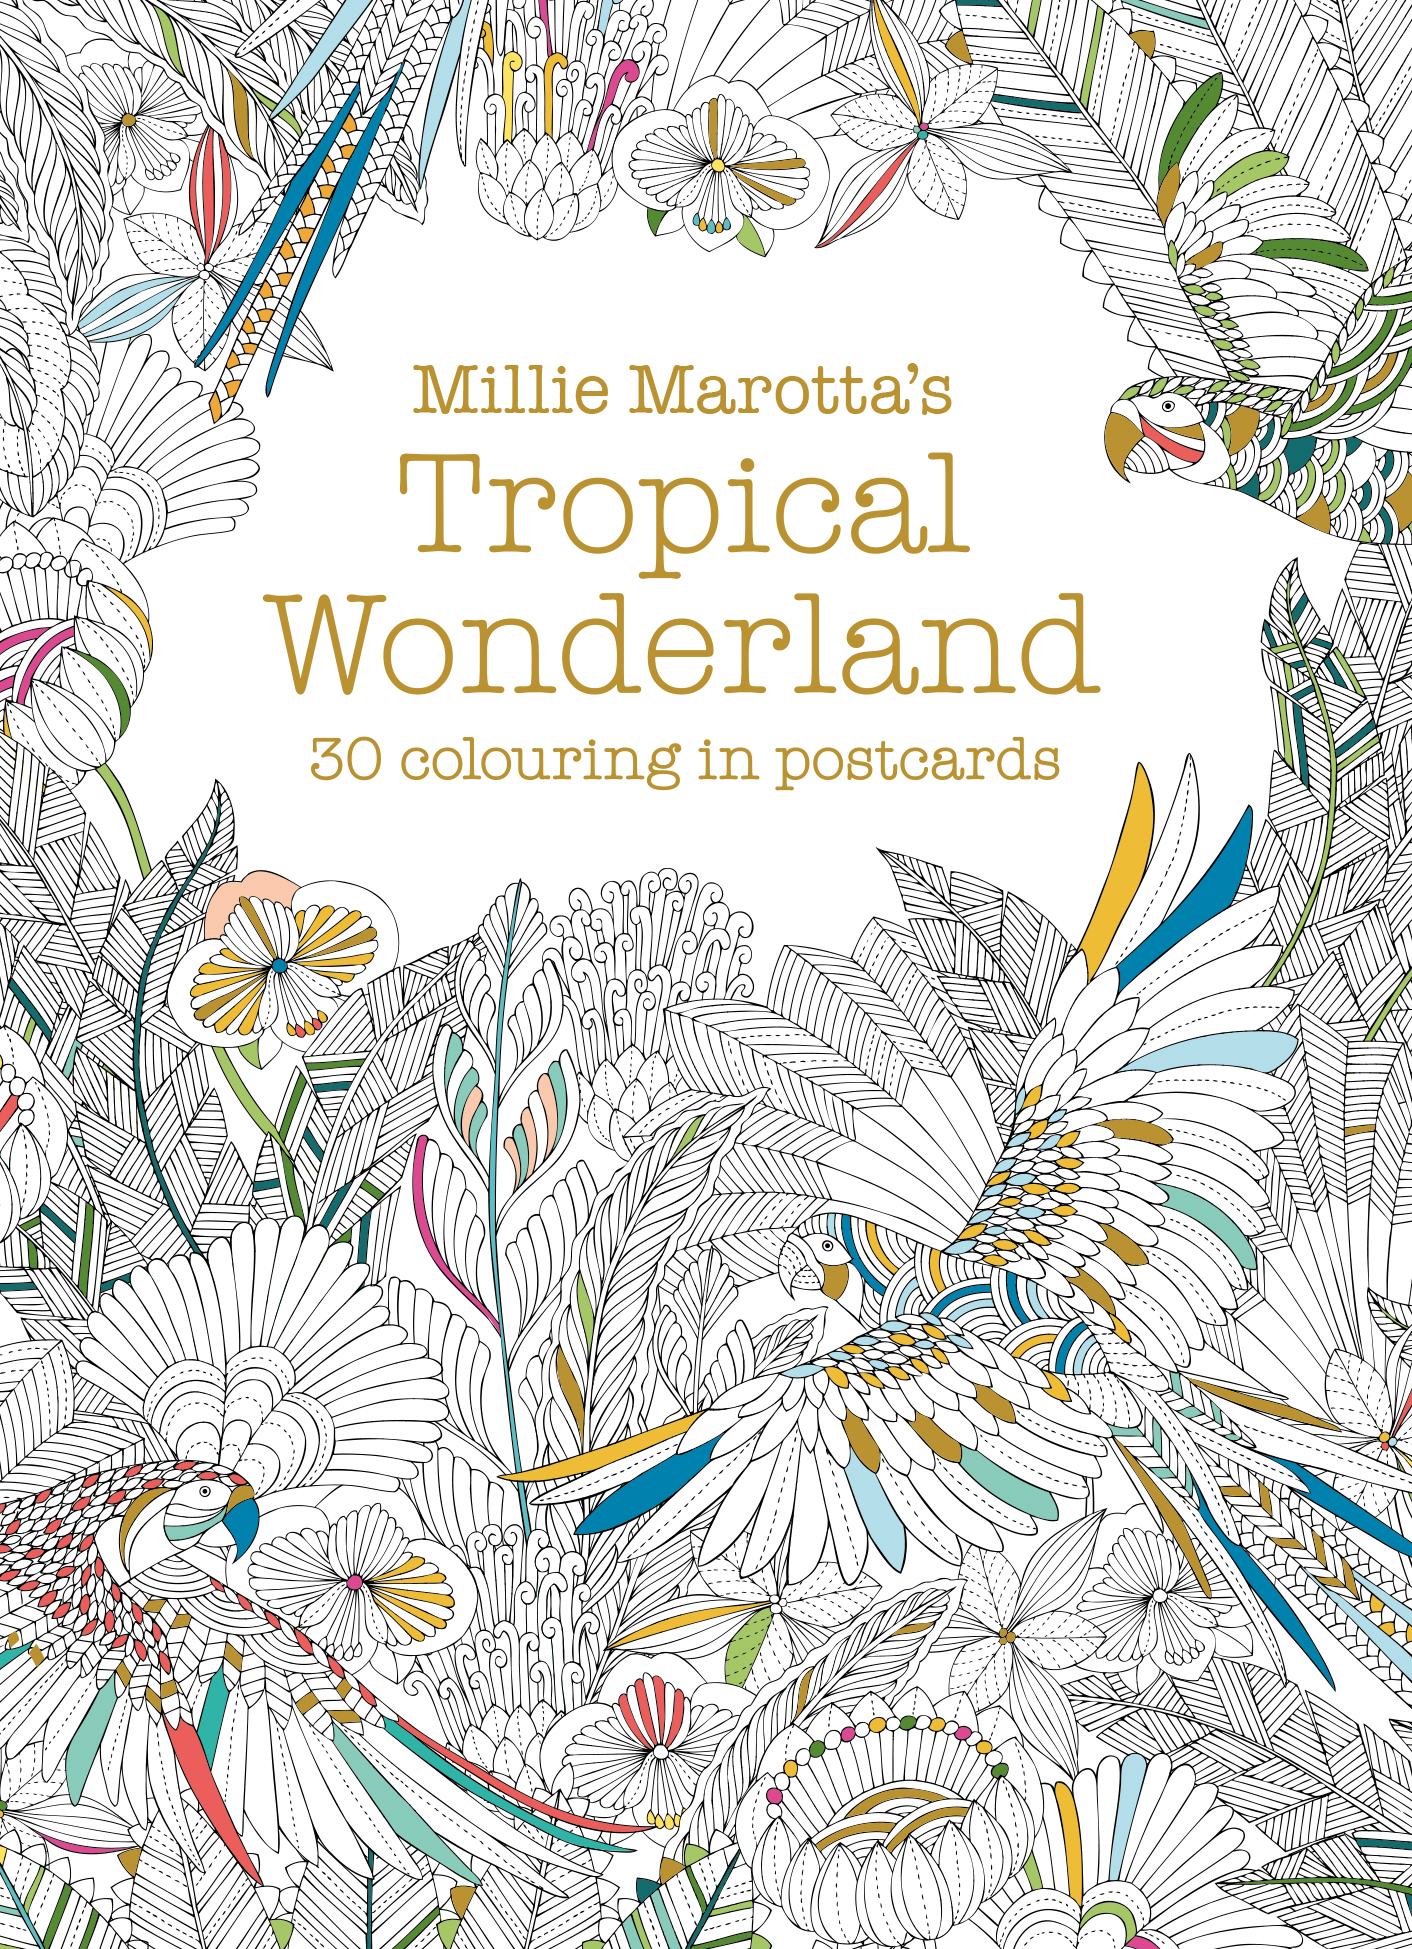 Millie Marotta's Tropical Wonderland Postcard Book